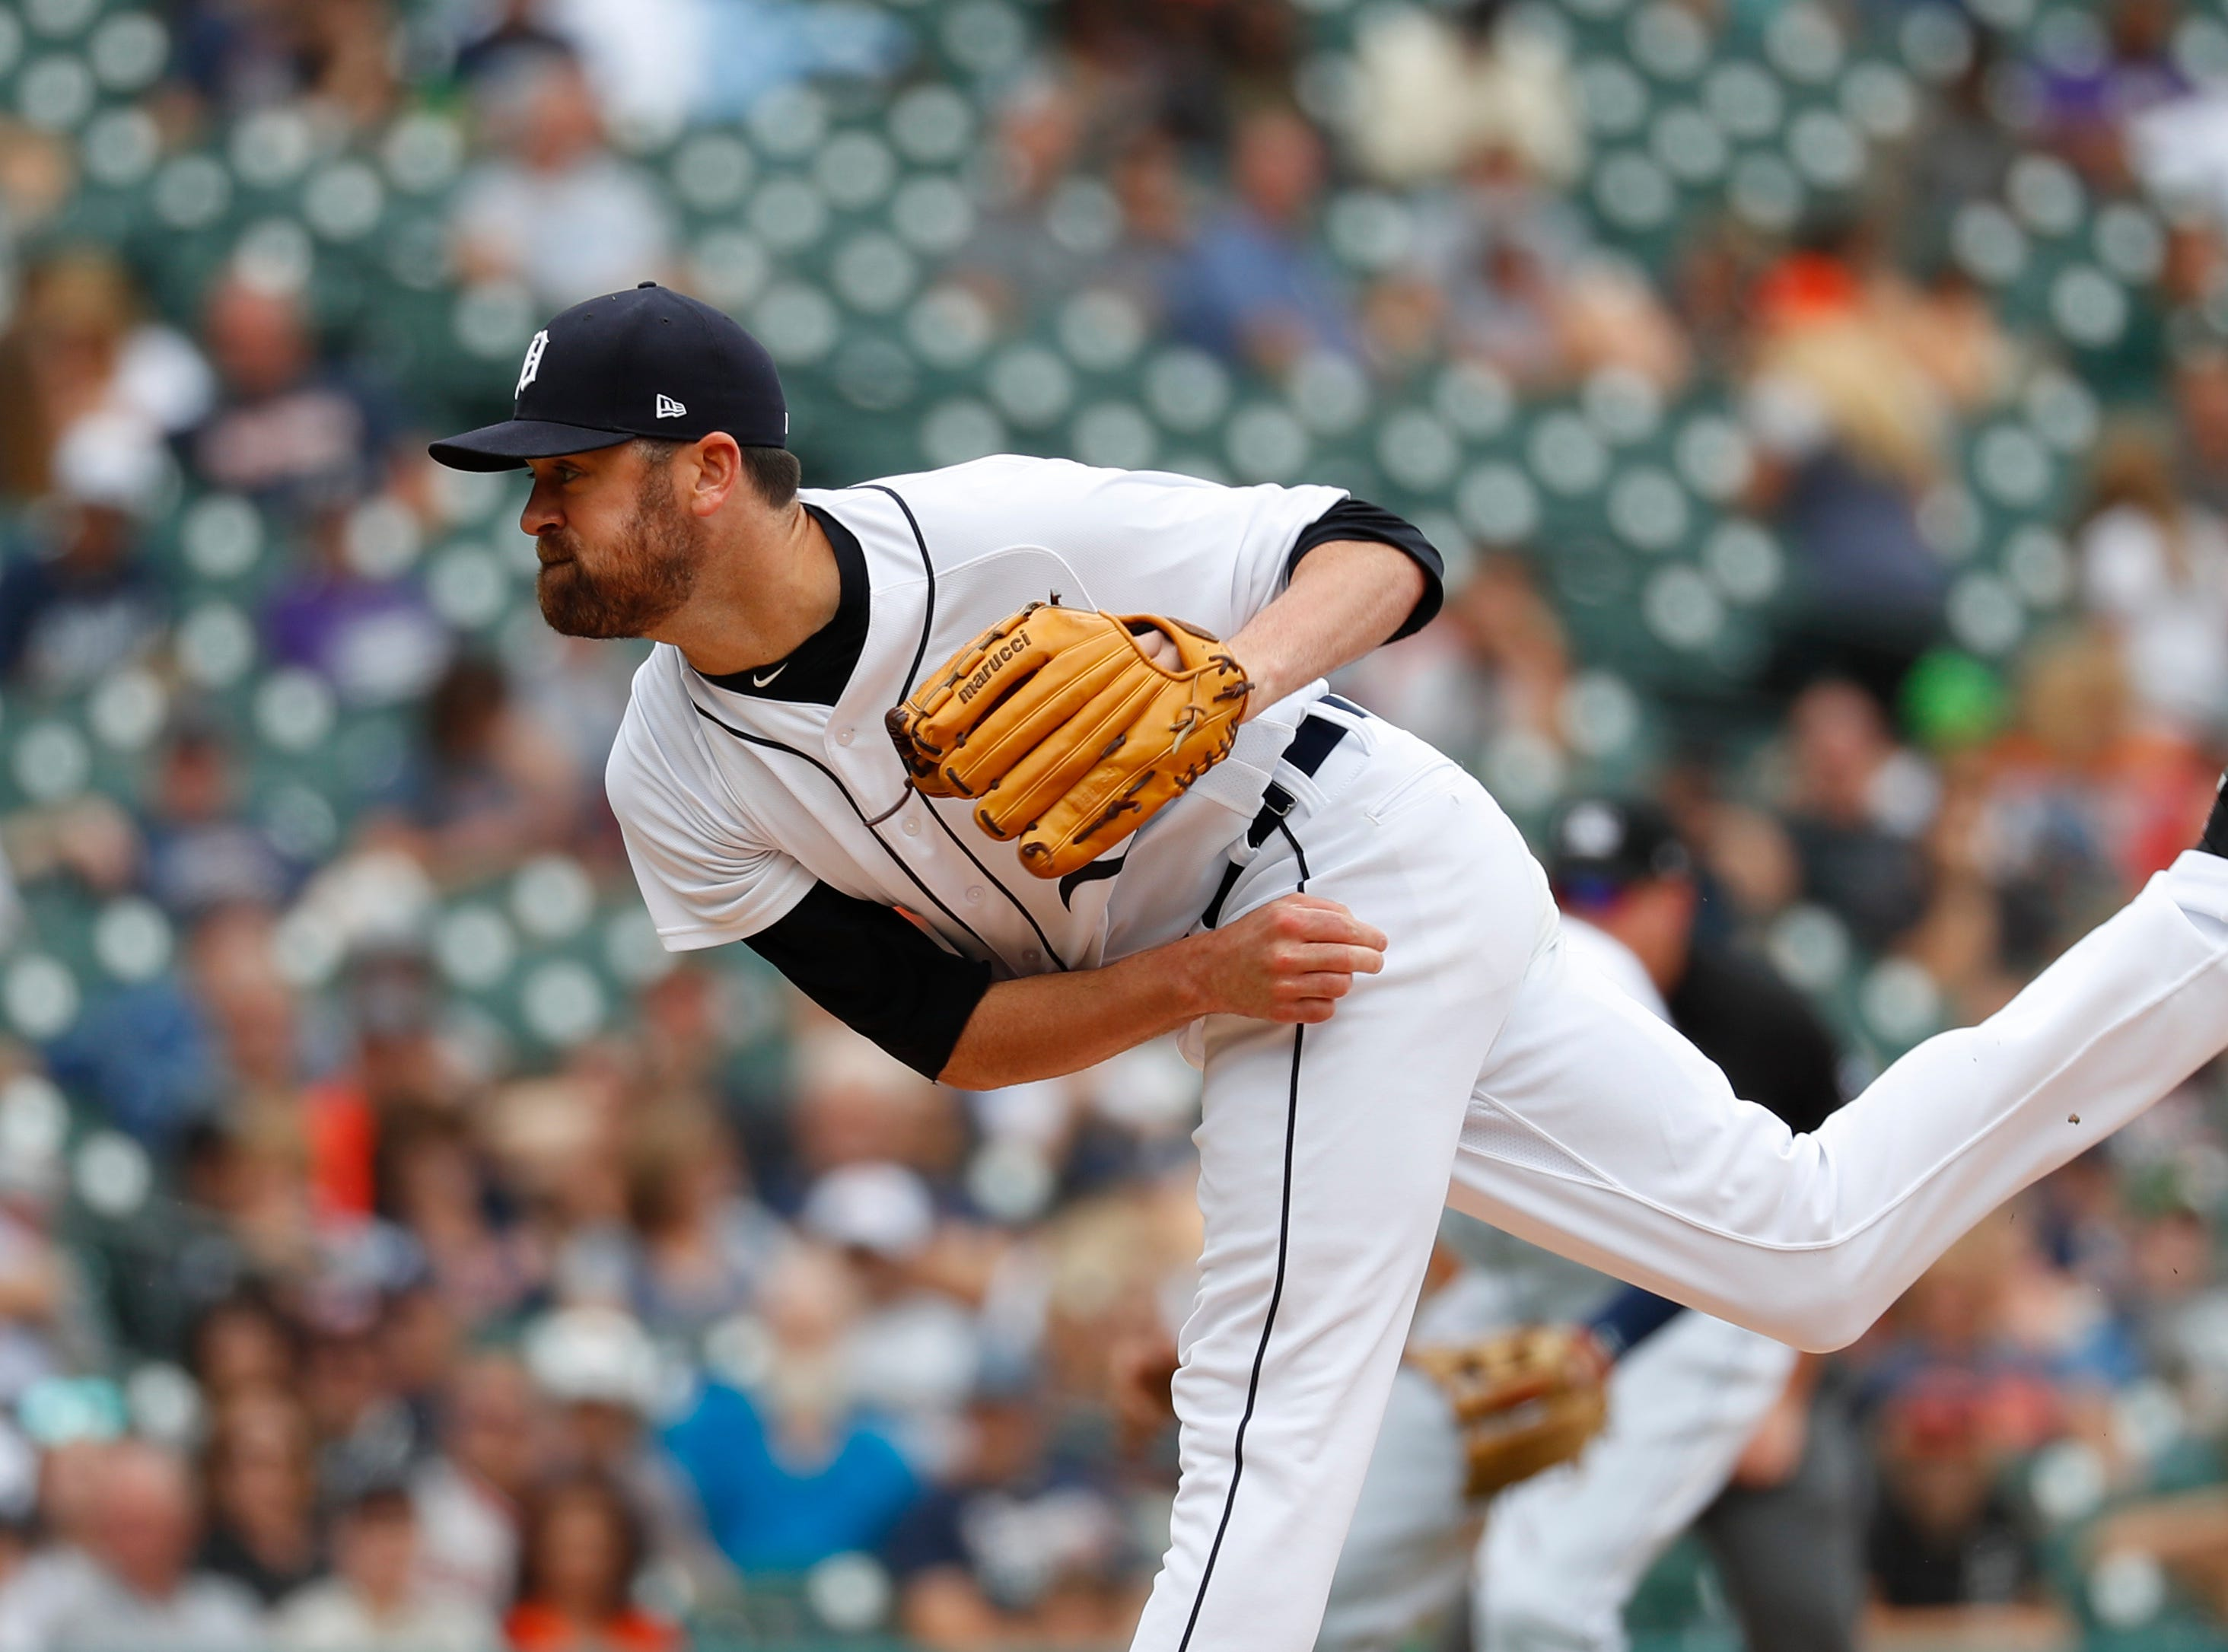 Tigers relief pitcher Louis Coleman throws against the Cincinnati Reds in the seventh inning.